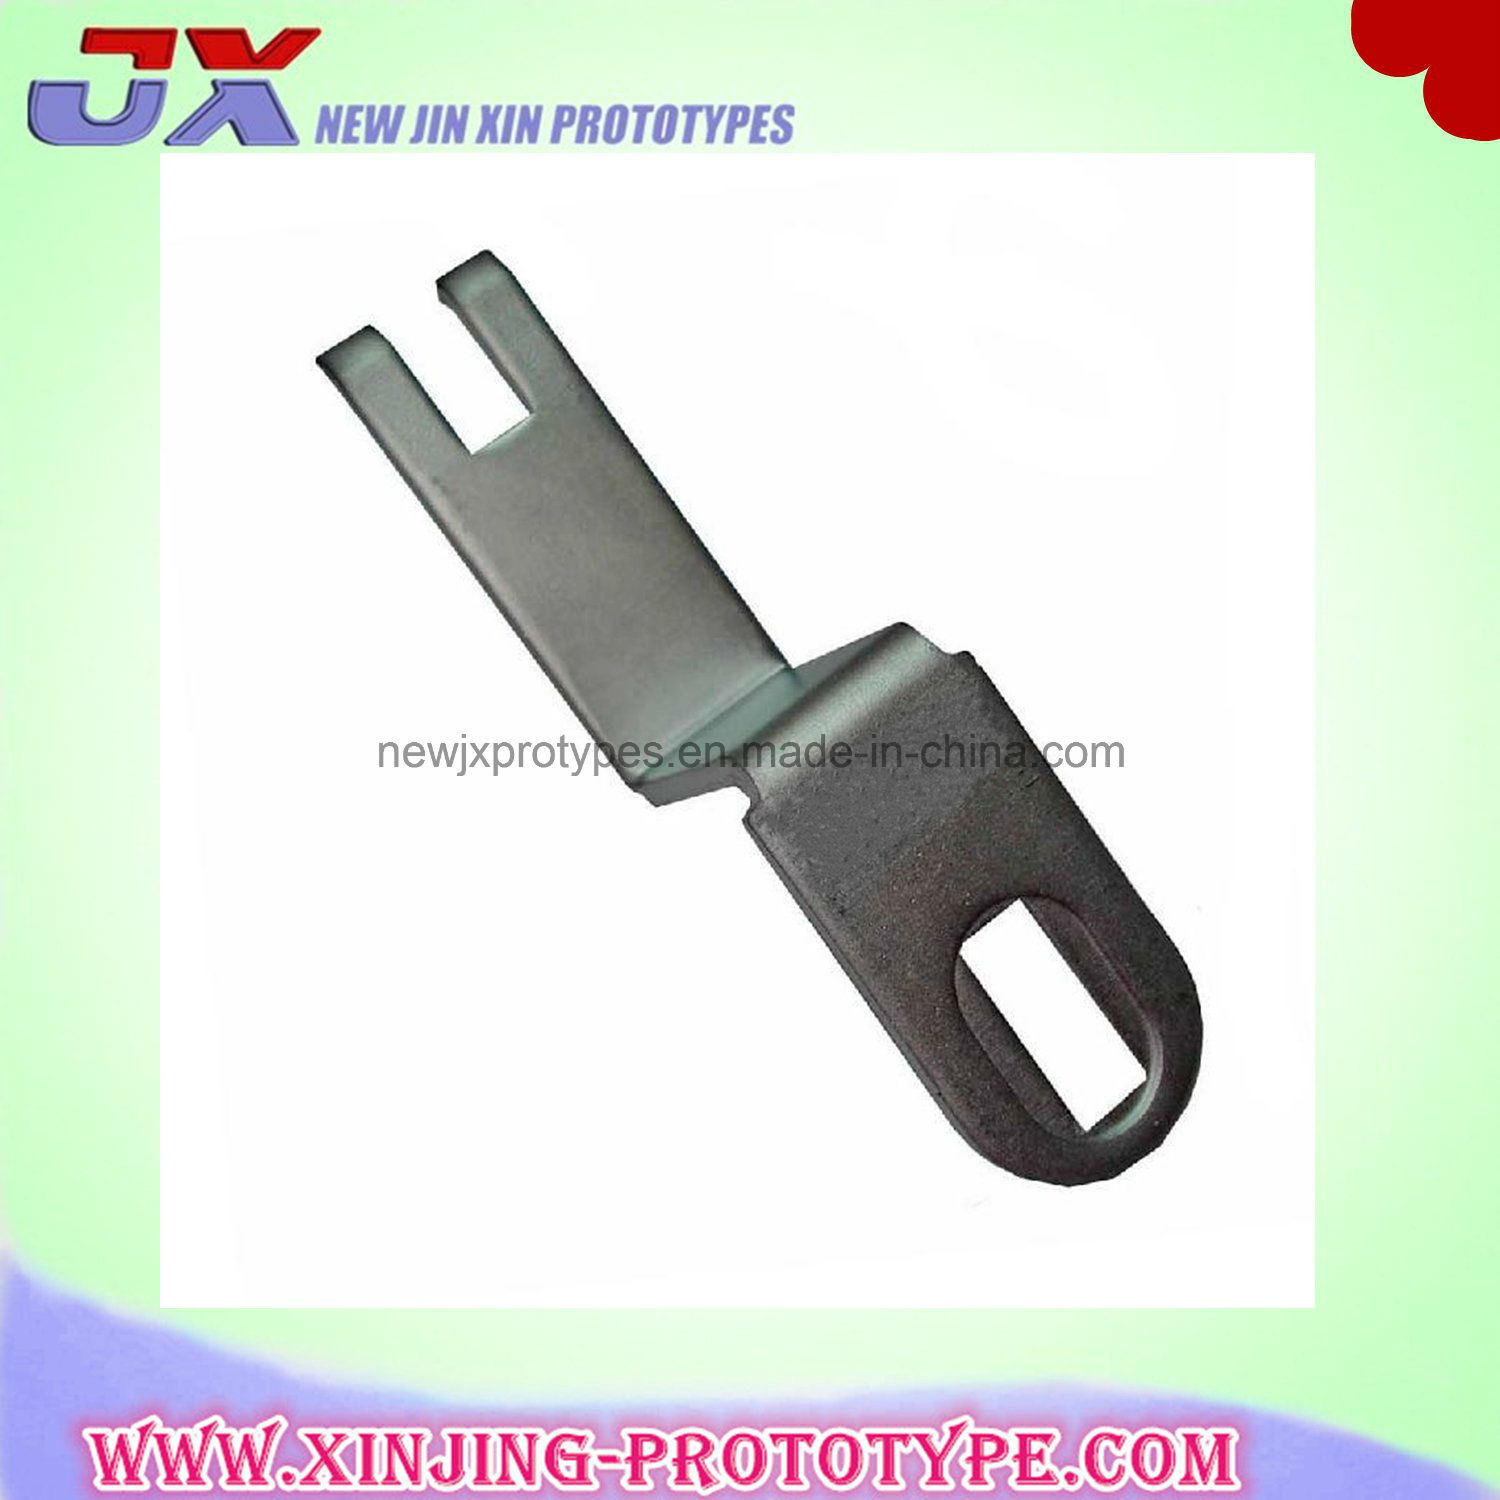 Precision Metal Stamping Parts Laser Cutting&Surface Treatment for Electrical Appliance